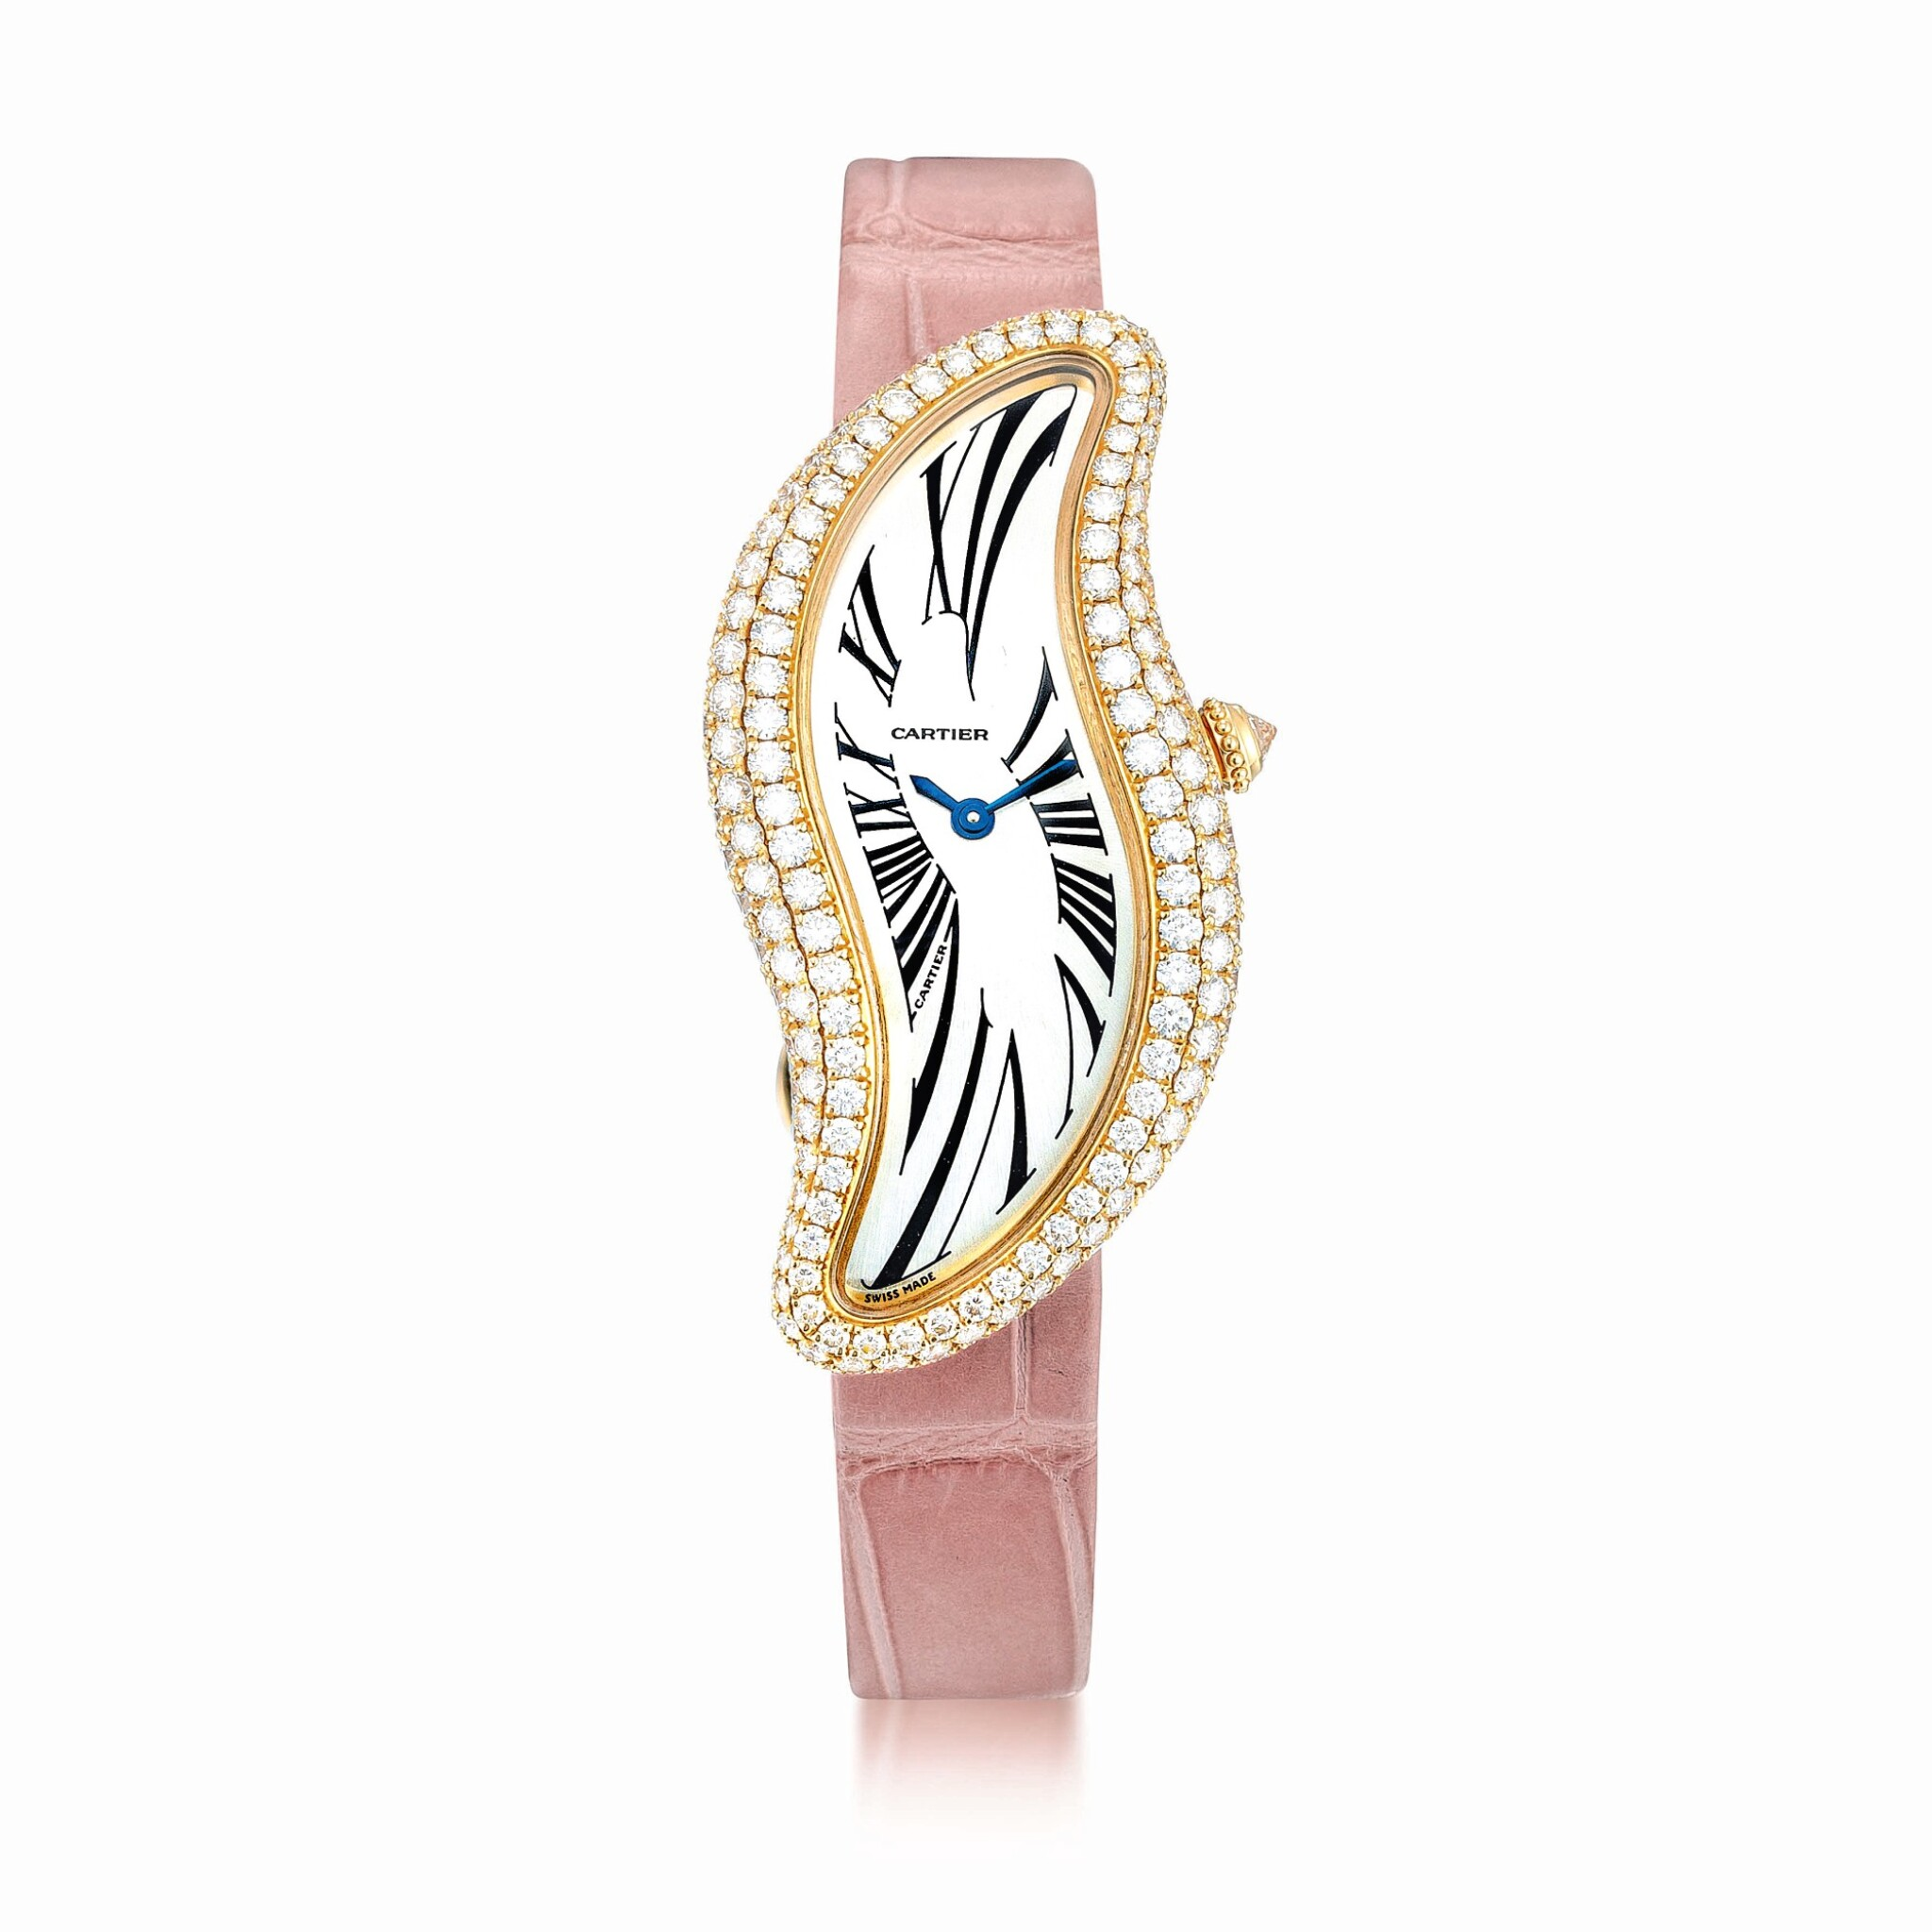 View full screen - View 1 of Lot 2036. Cartier | Baignoire, Reference 3248, A pink gold and diamond-set wristwatch, Circa 2015 | 卡地亞 | Baignoire 型號3248 粉紅金鑲鑽石腕錶,約2015年製.